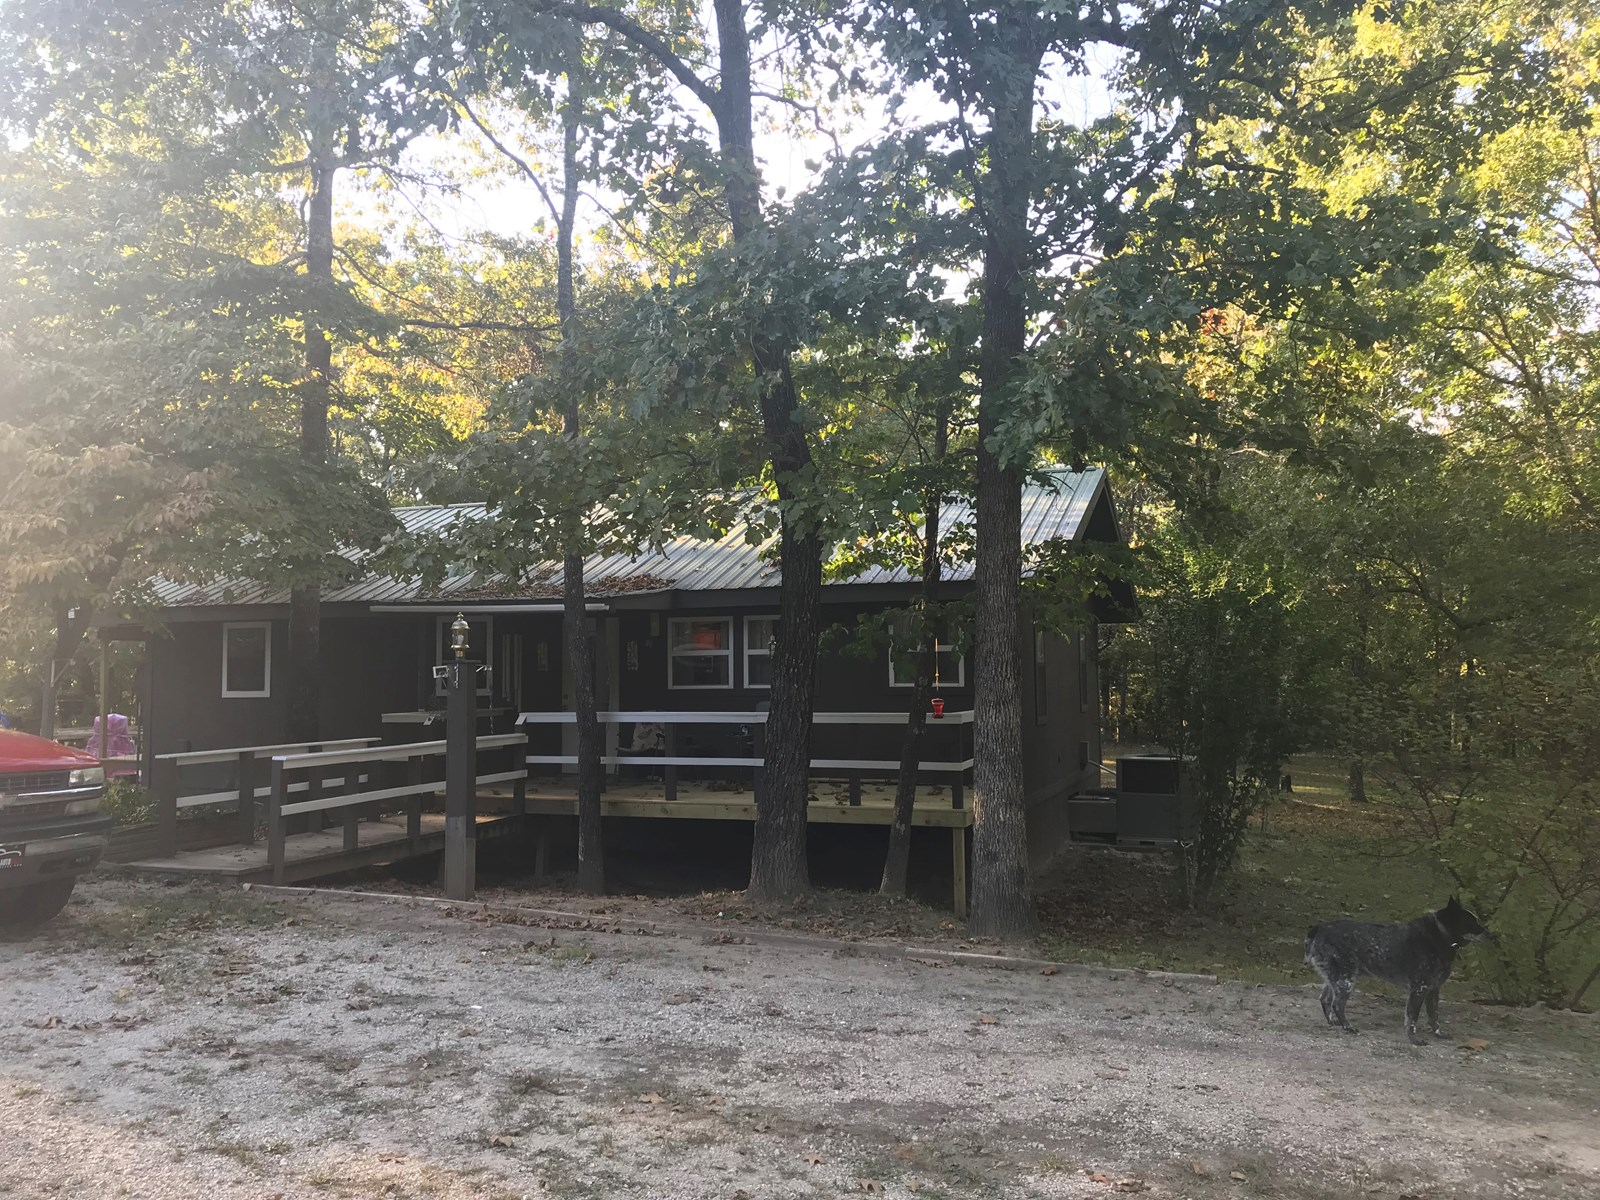 Country home on acreage for sale in Izard Co AR